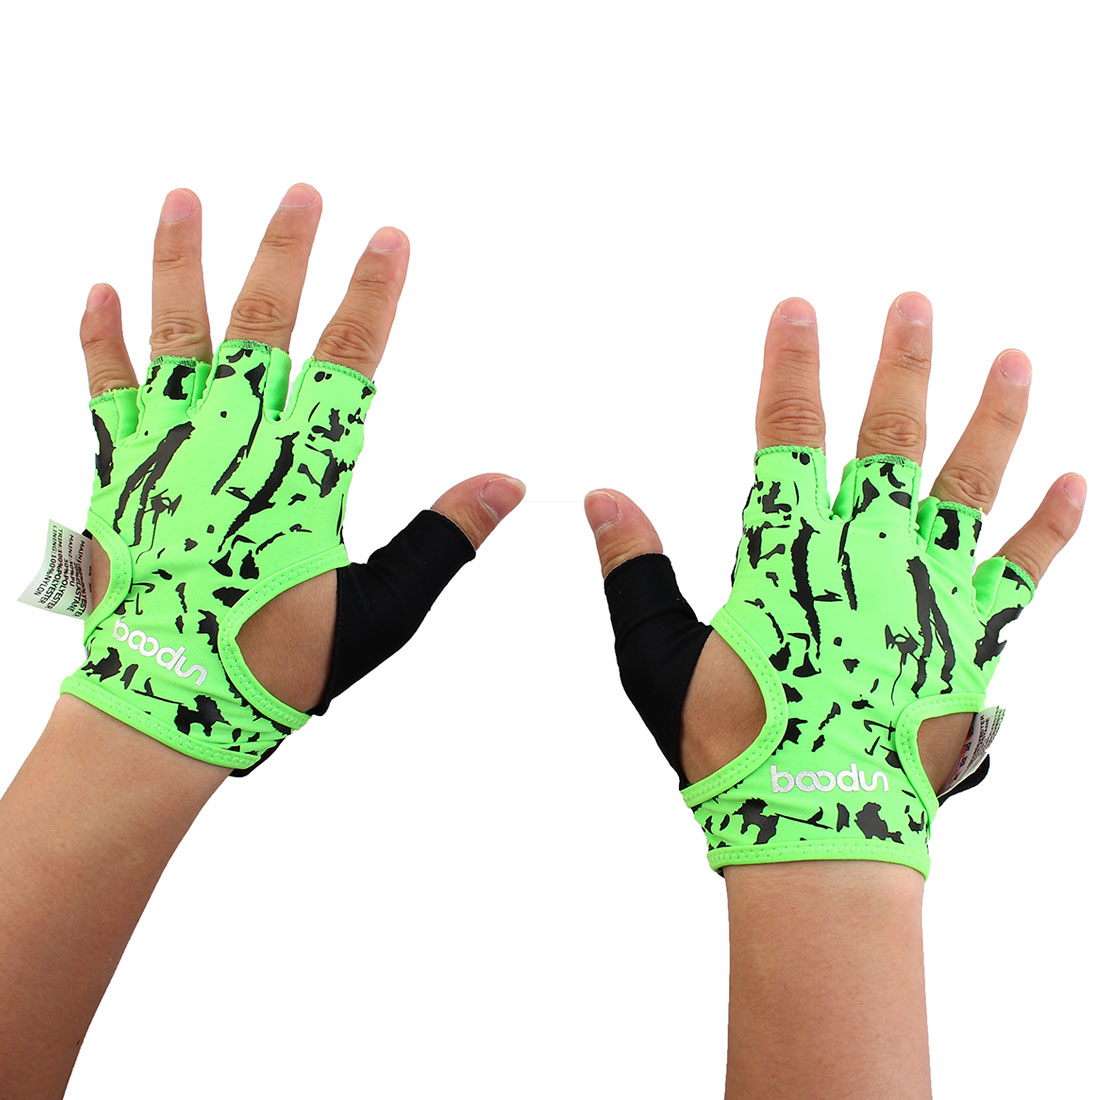 BOODUN Authorized Unisex Sports Training Workout Mittens Breathable Palm Support Fitness Gloves Green S Pair